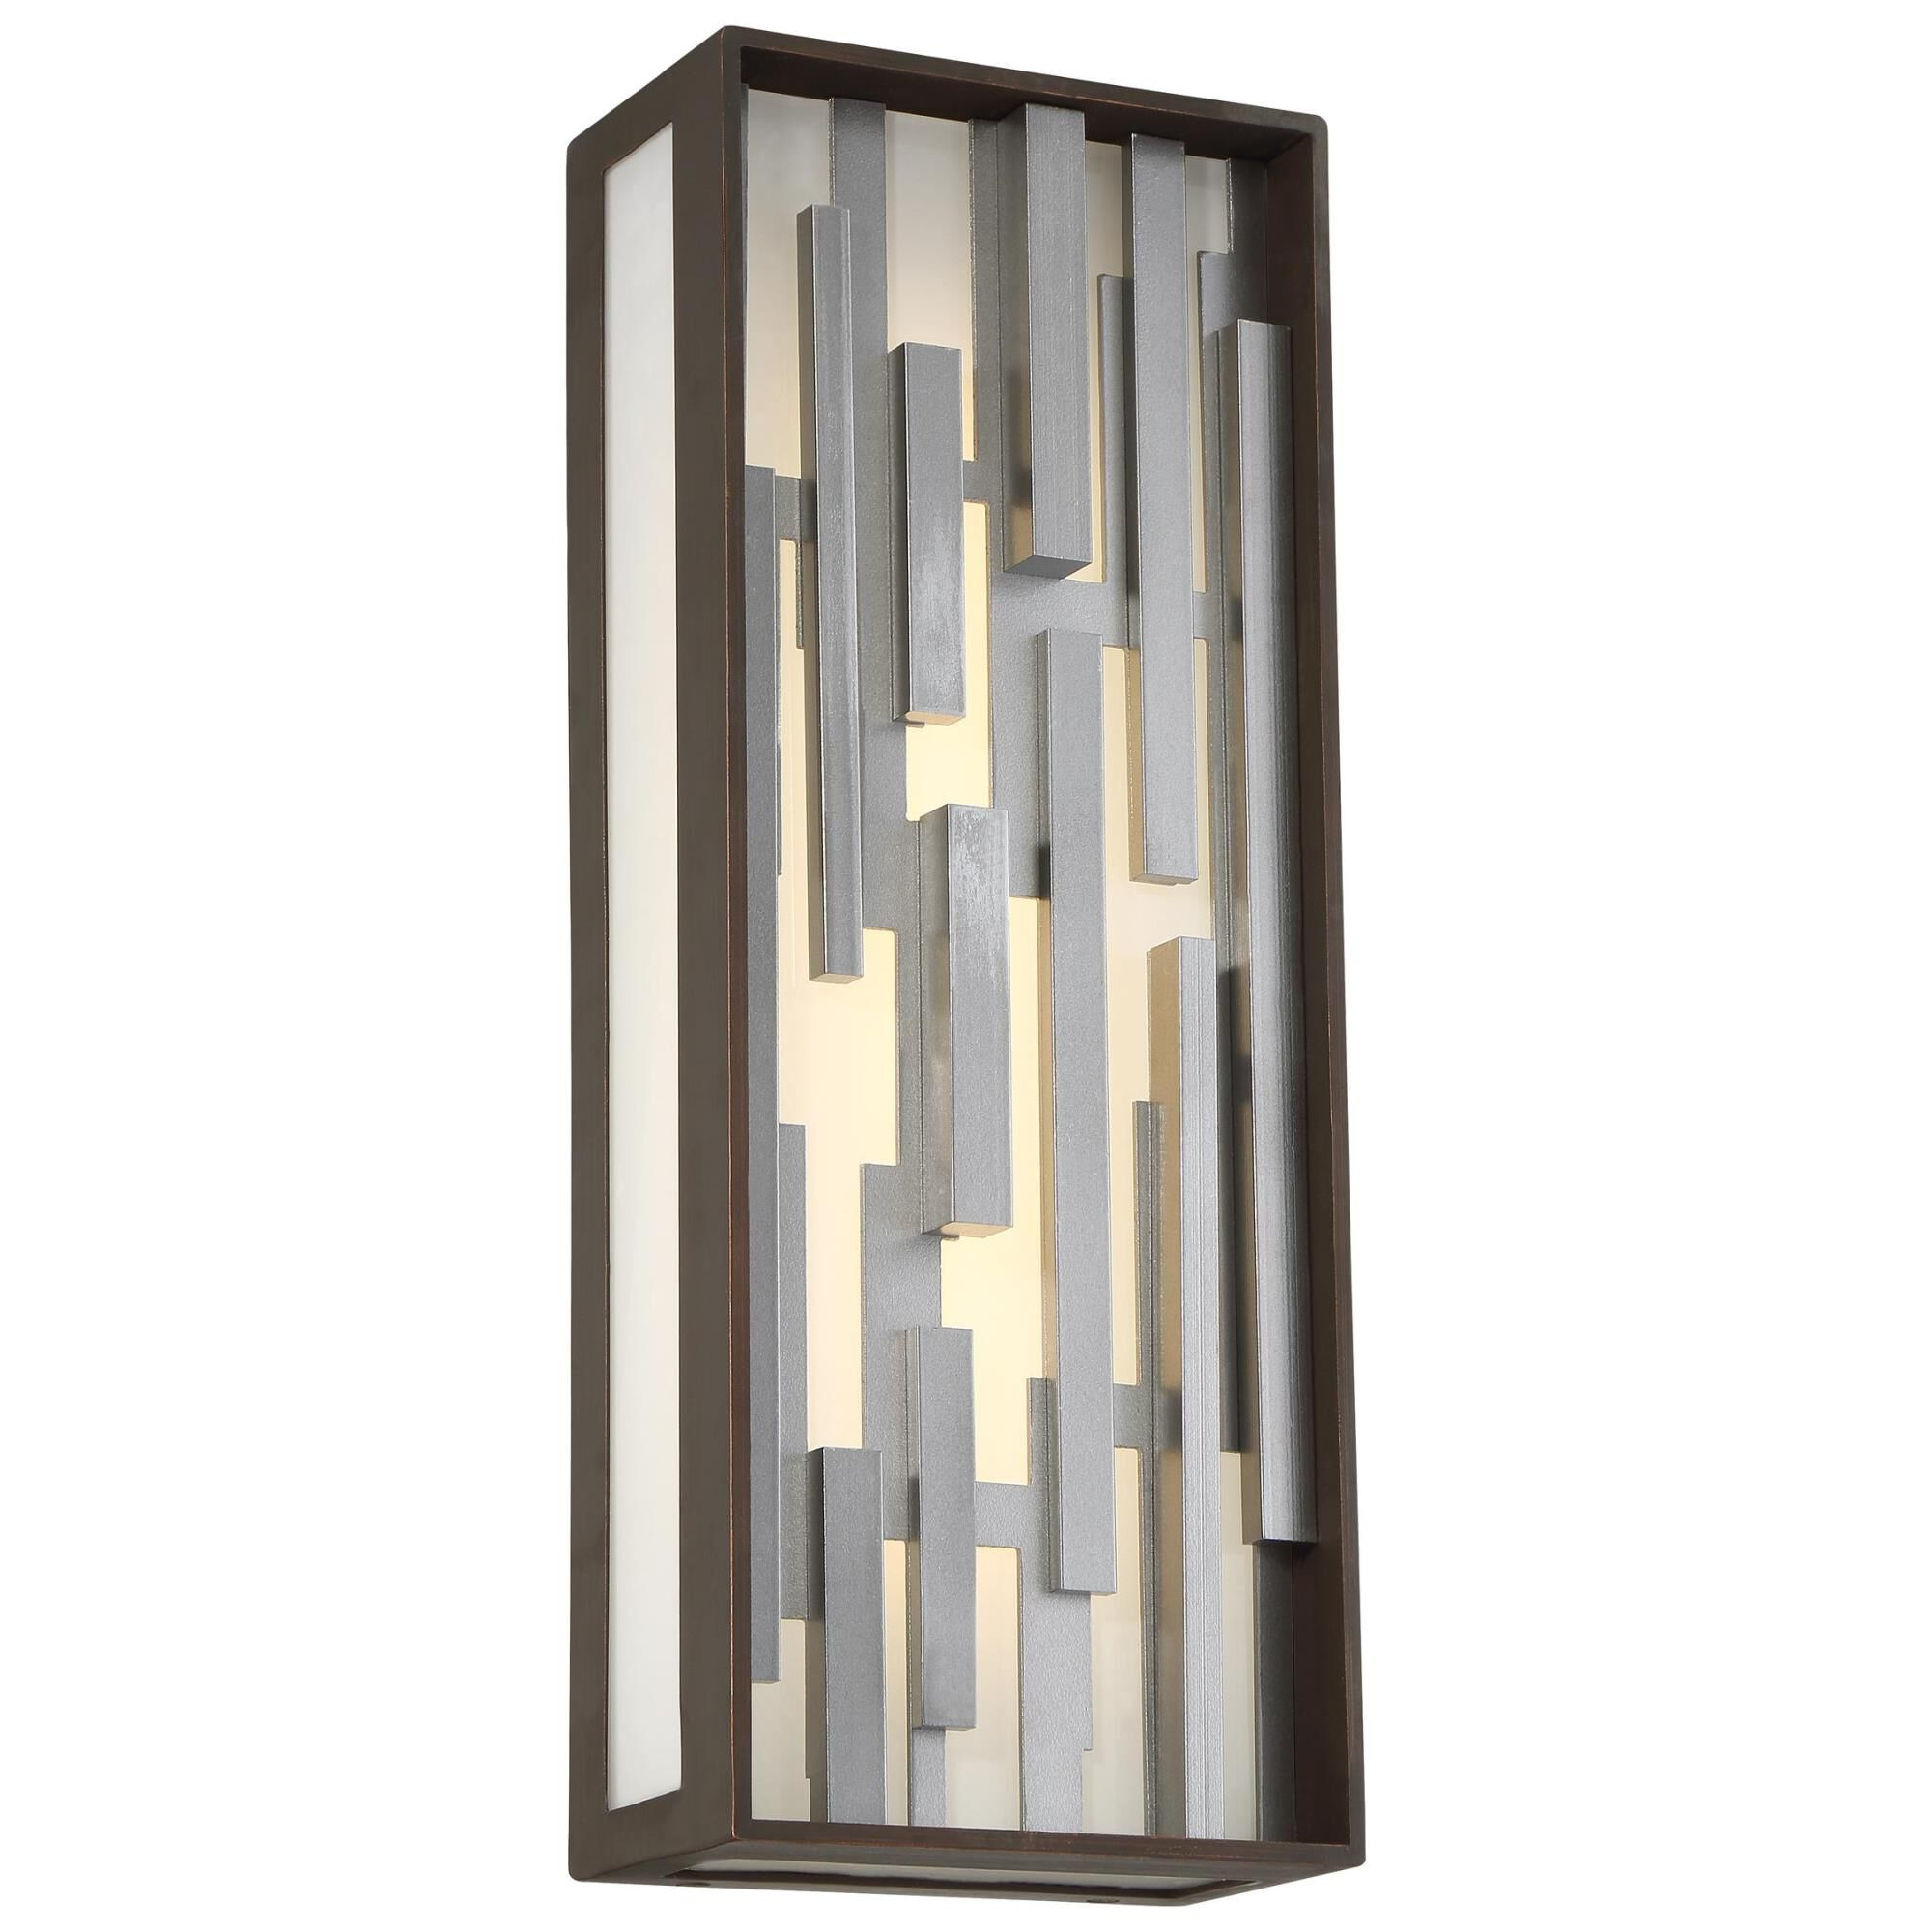 Kovacs Bars 17 Inch Tall 1 Light Led Outdoor Wall Light Bars - P1272-650-l - Modern Contemporary